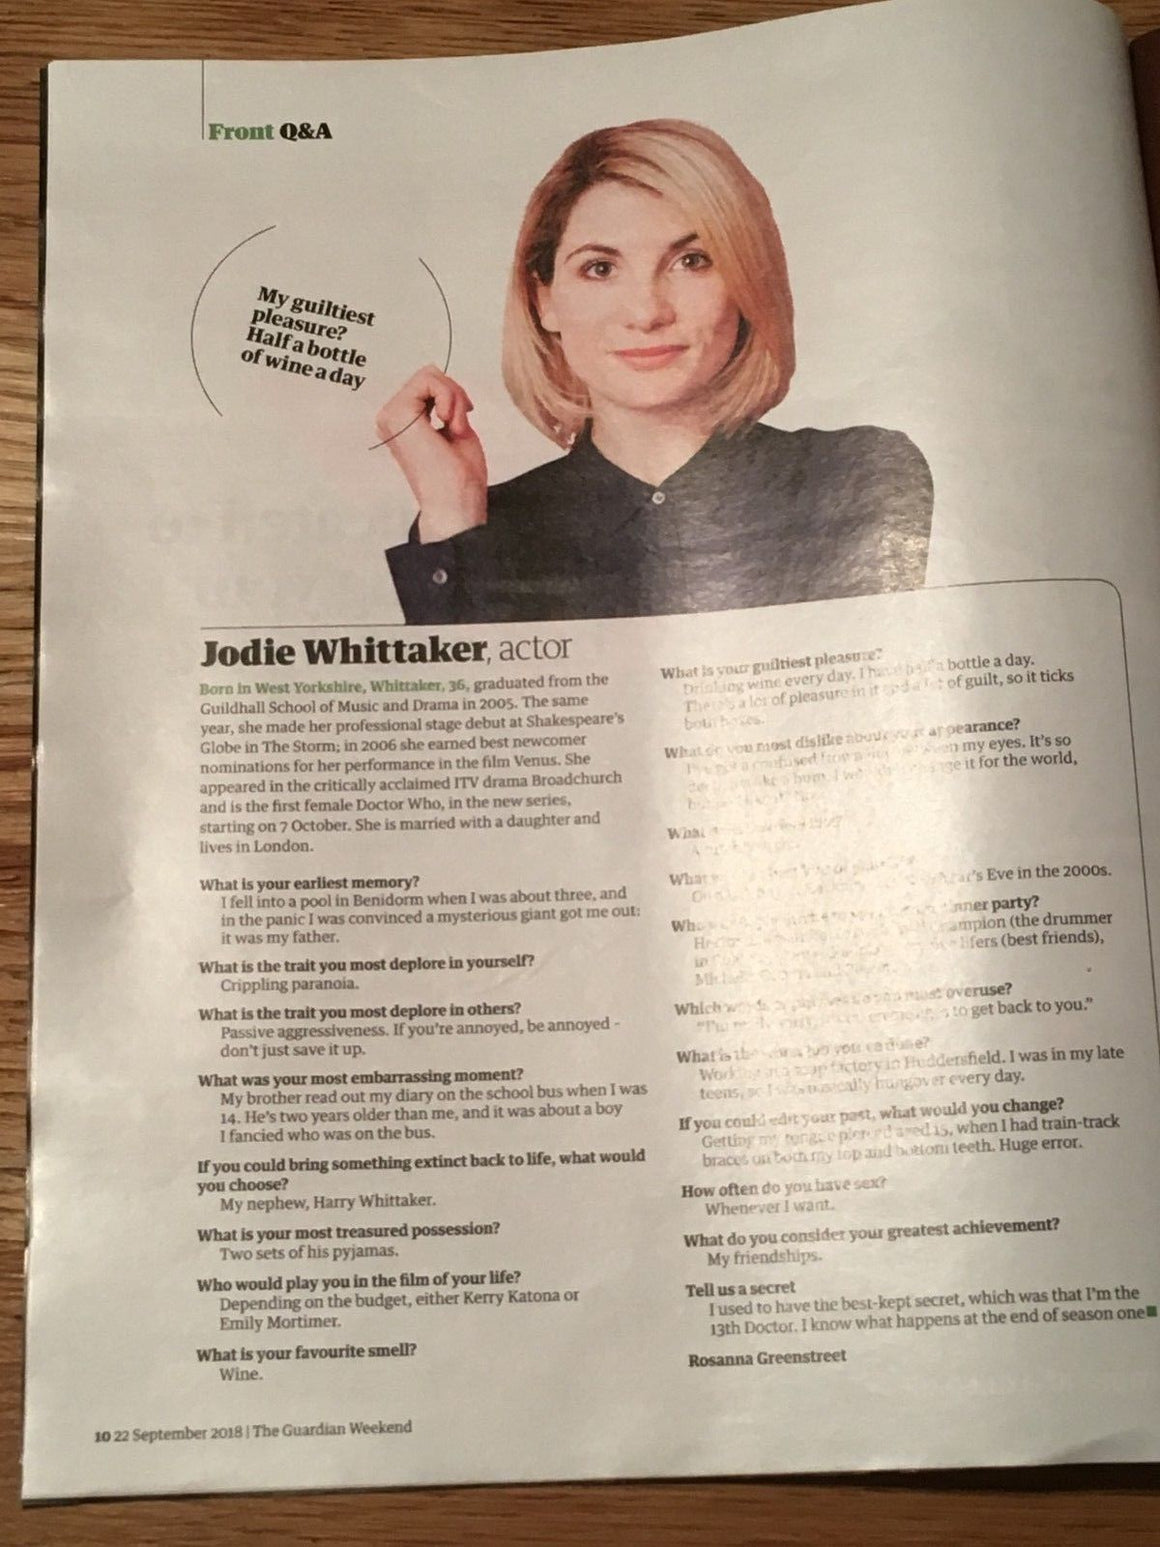 UK Guardian Weekend Magazine SEPT 2018: JODIE WHITTAKER The New Doctor Who